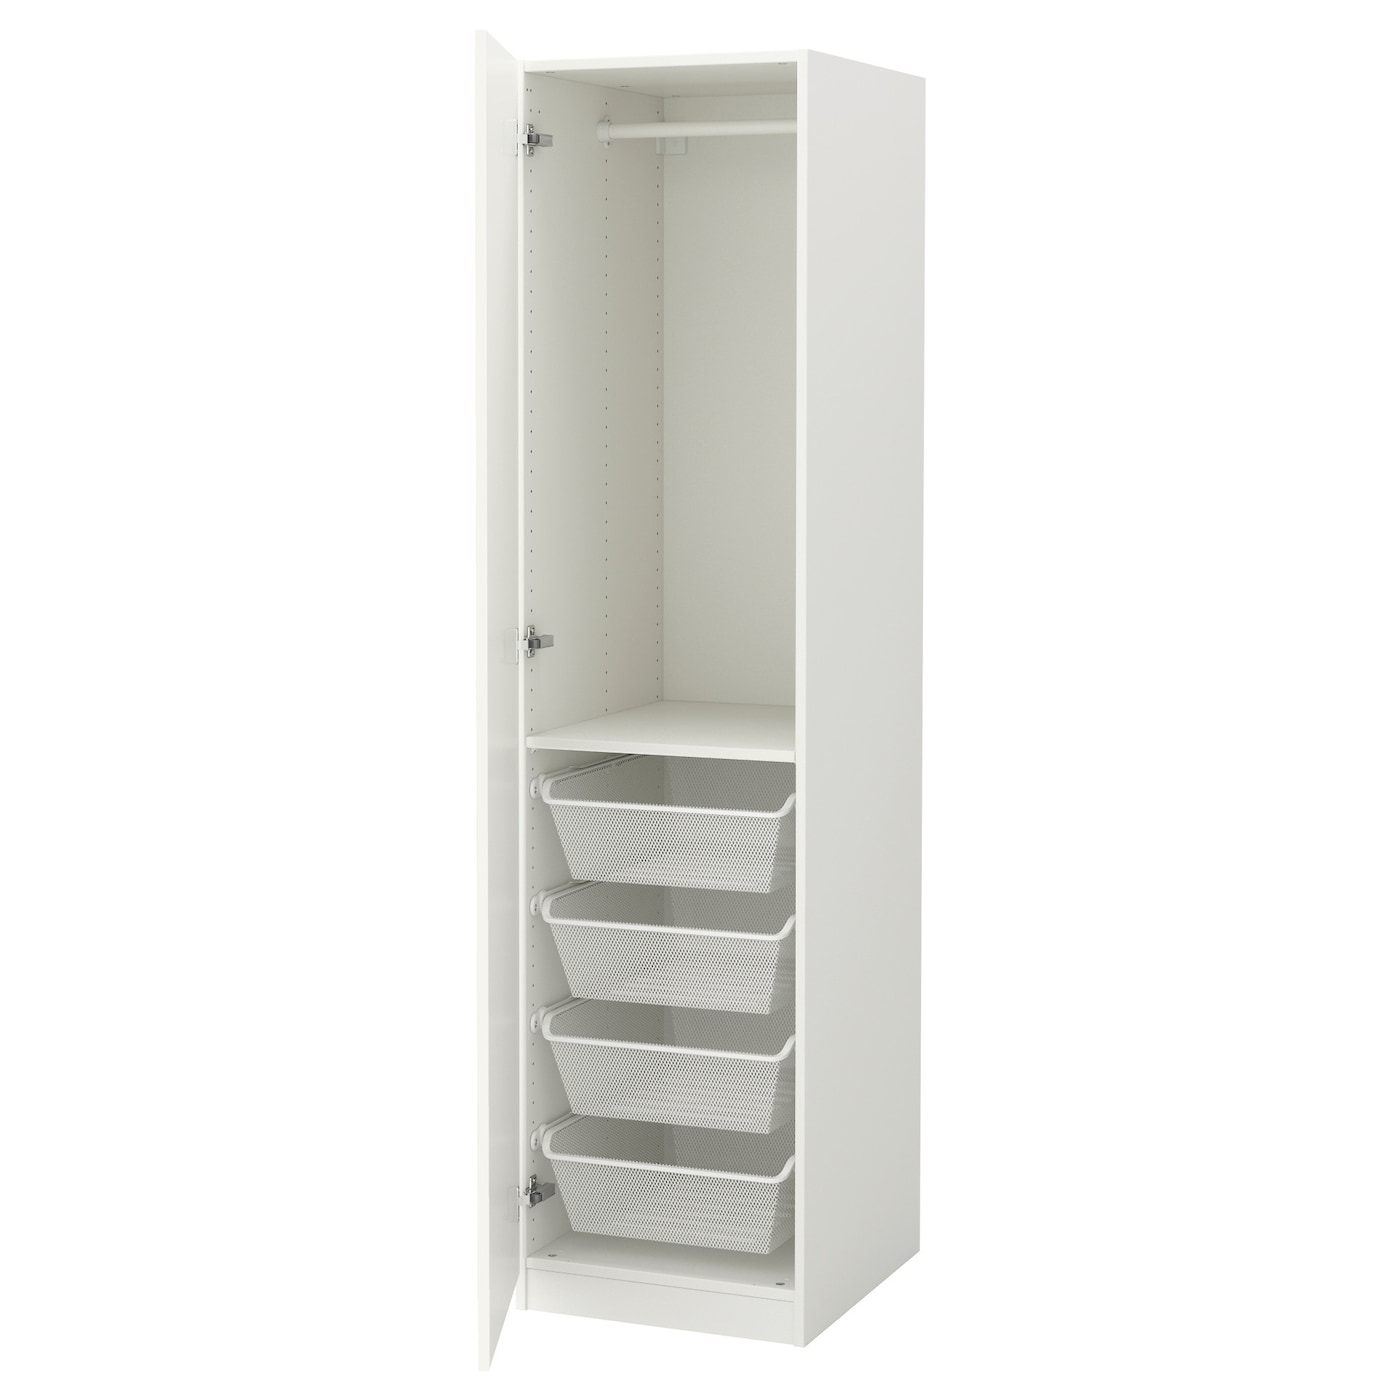 pax wardrobe white tanem white 50x60x201 cm ikea. Black Bedroom Furniture Sets. Home Design Ideas